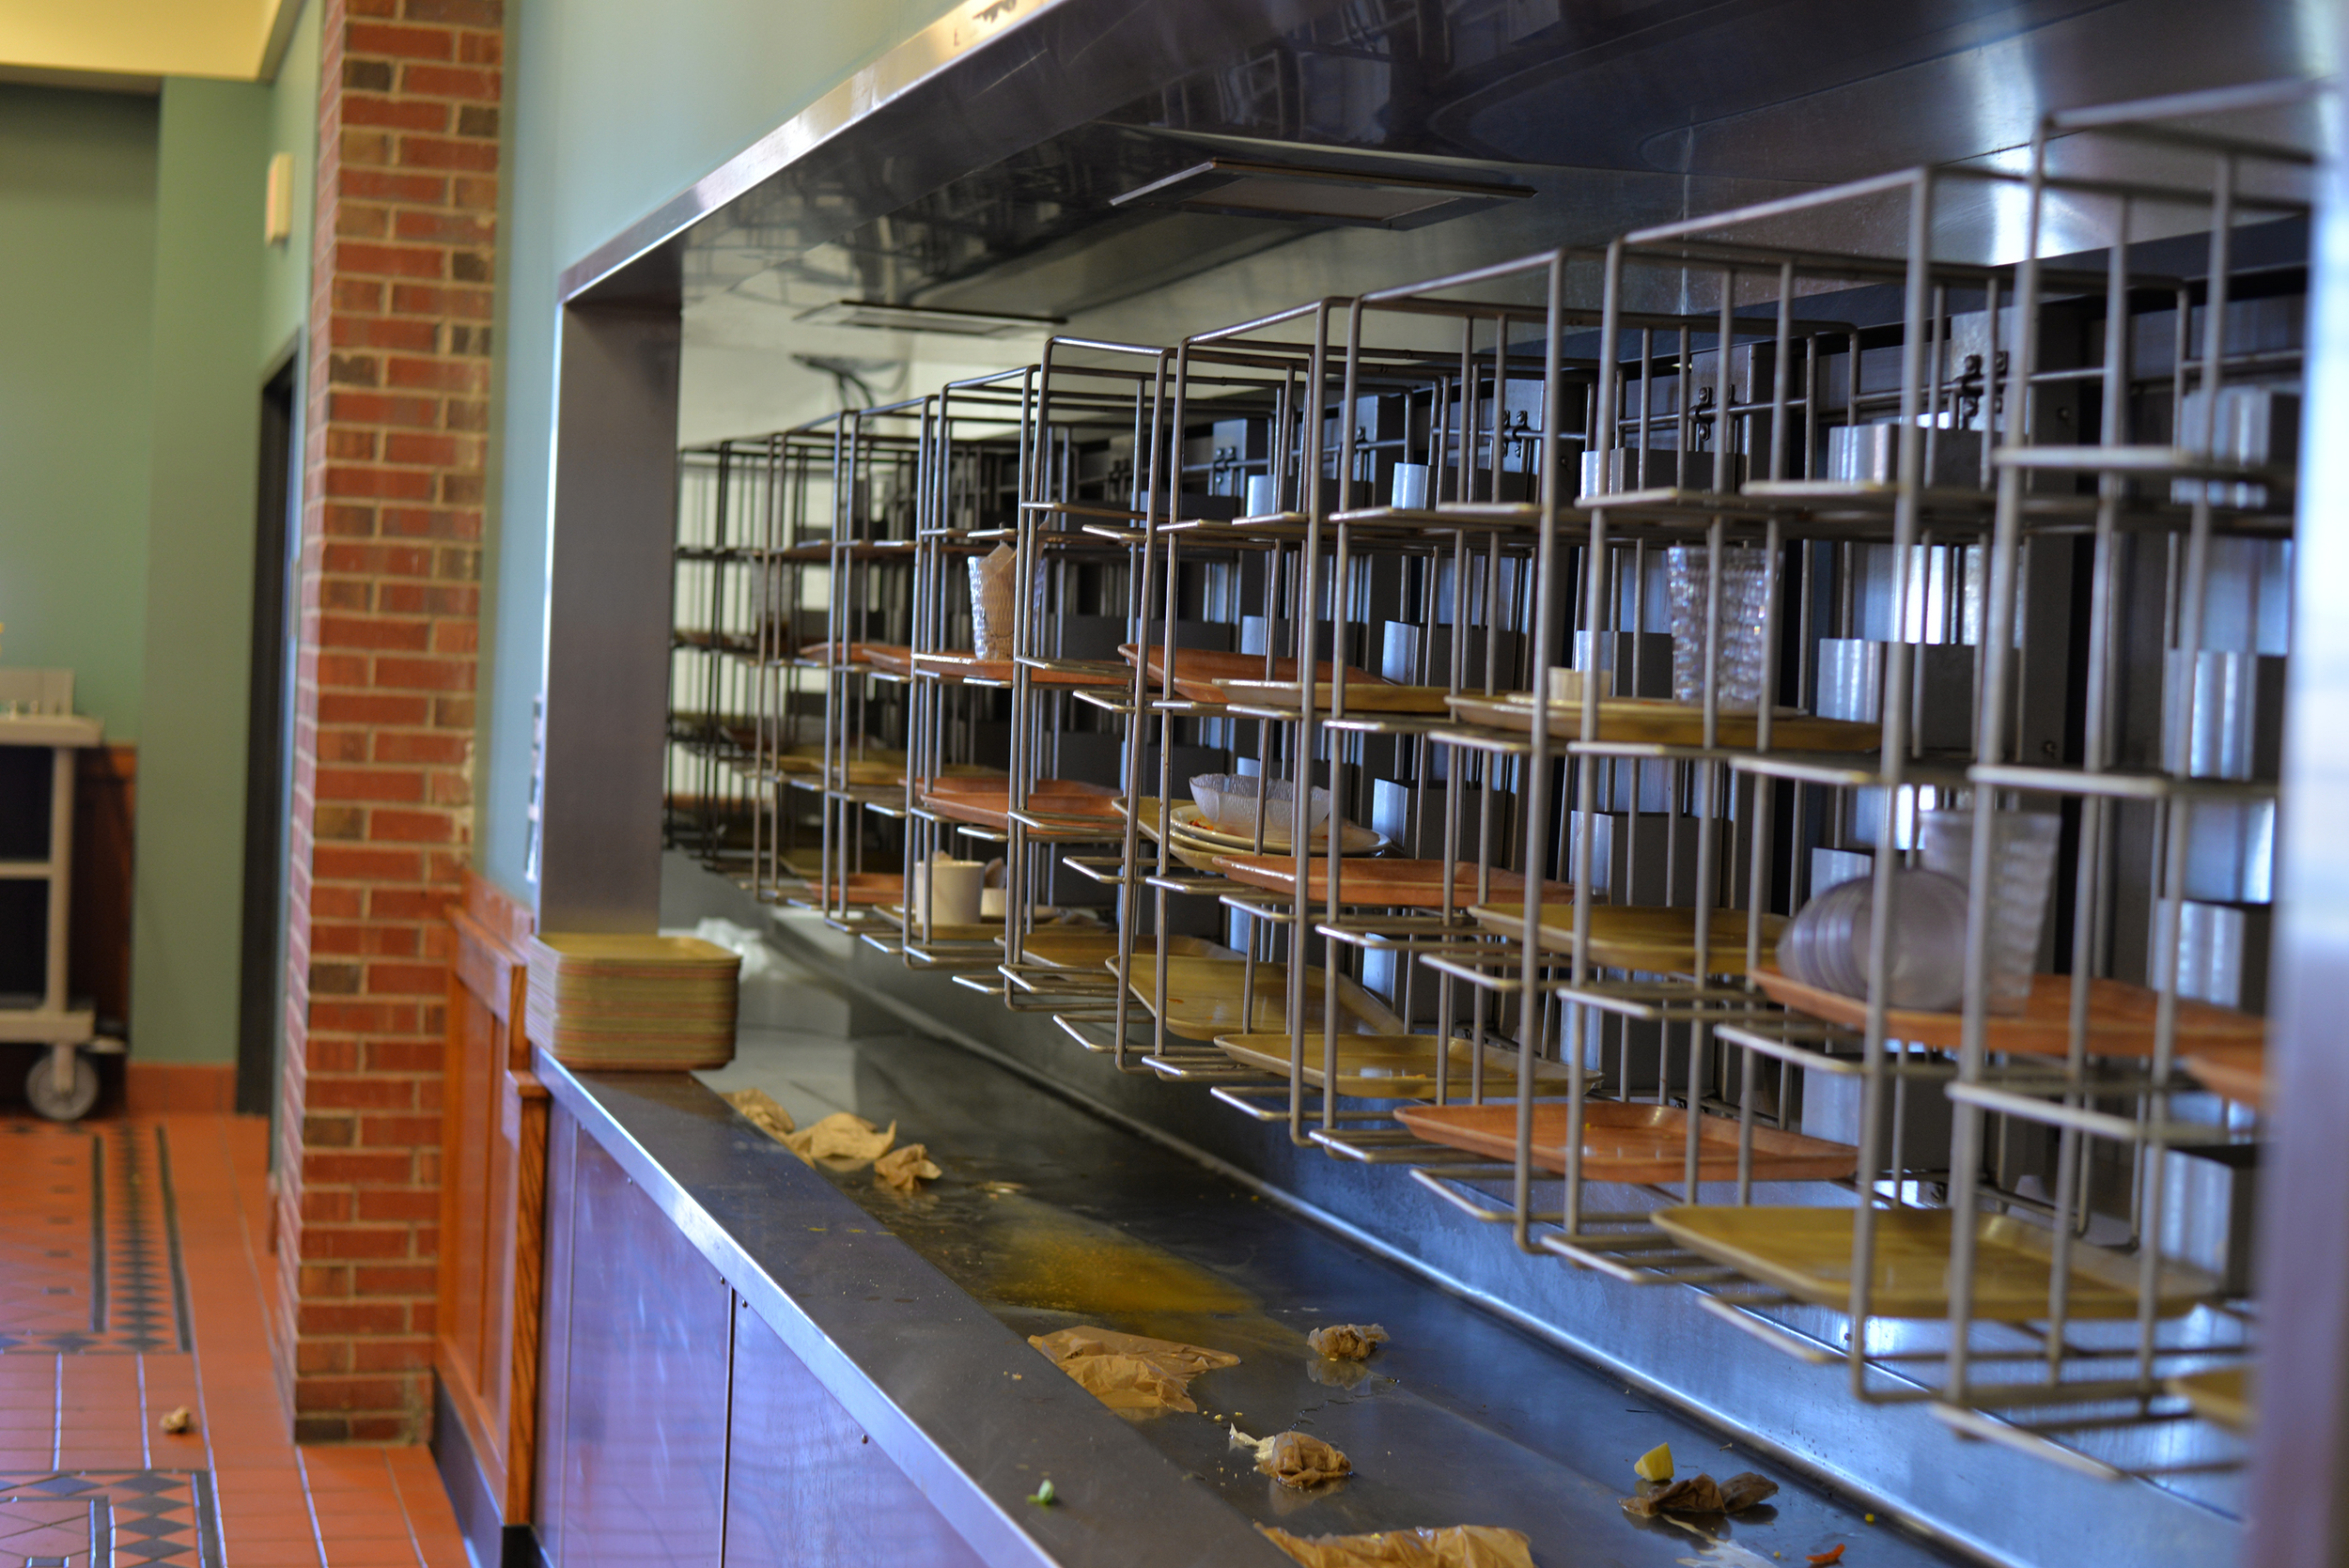 Empty trains containing plates and food waste sit on a rack in the South Campus dining hall on the UConn campus in Storrs, Connecticut. (File Photo/The Daily Campus)